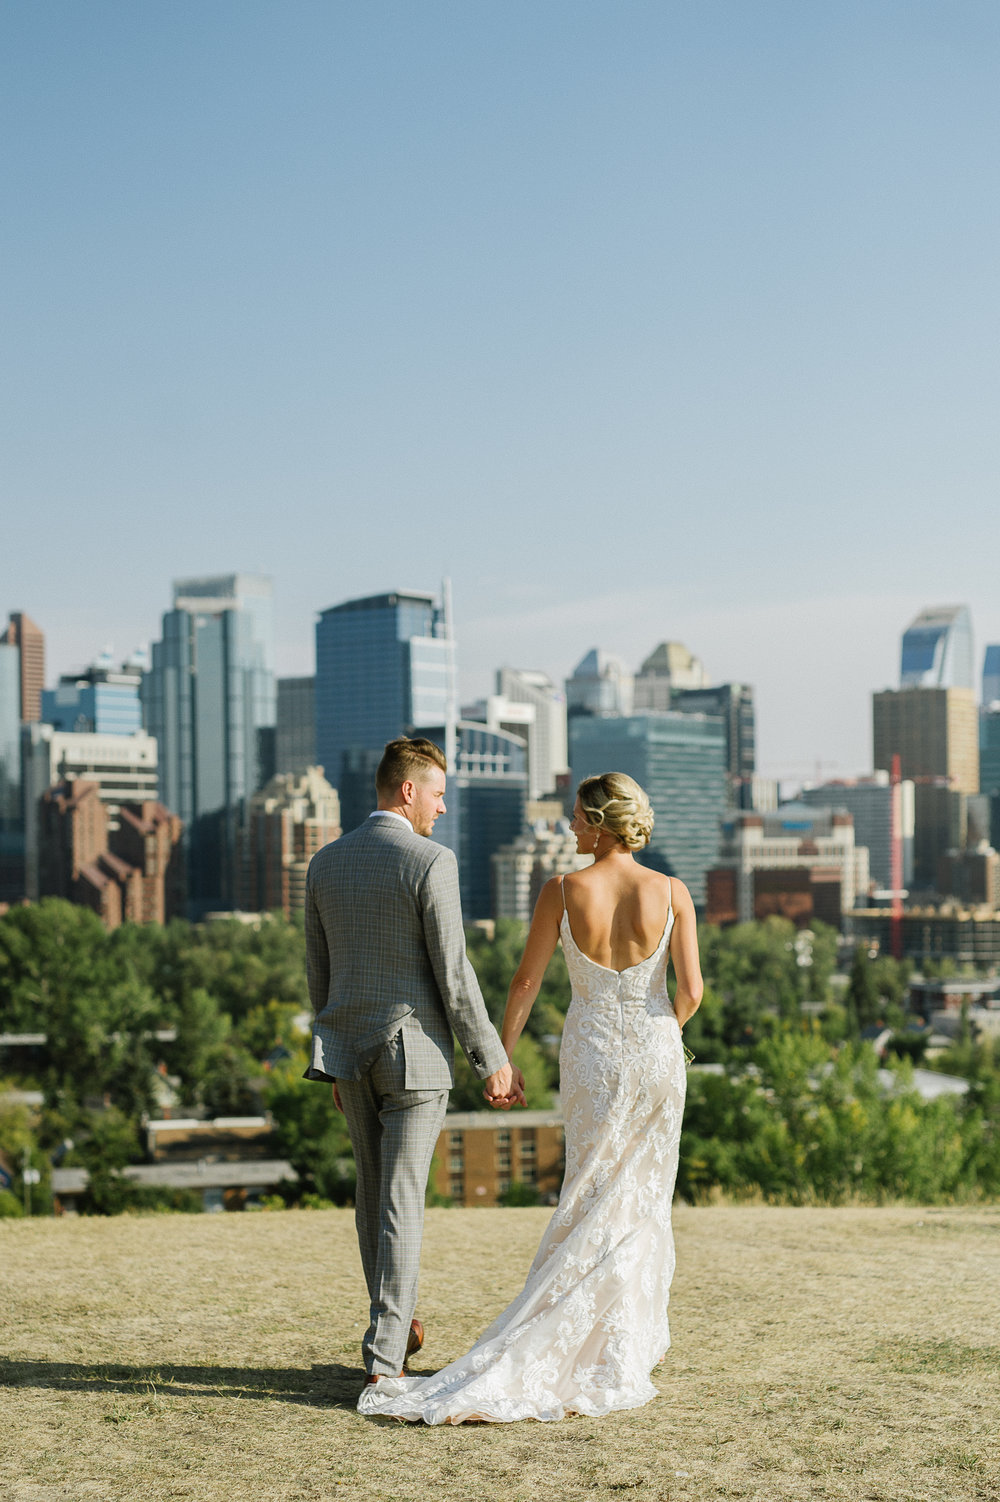 Calgary_Wedding_Photography_Melanie_Jeremy_Elopement_2017 0043.jpg